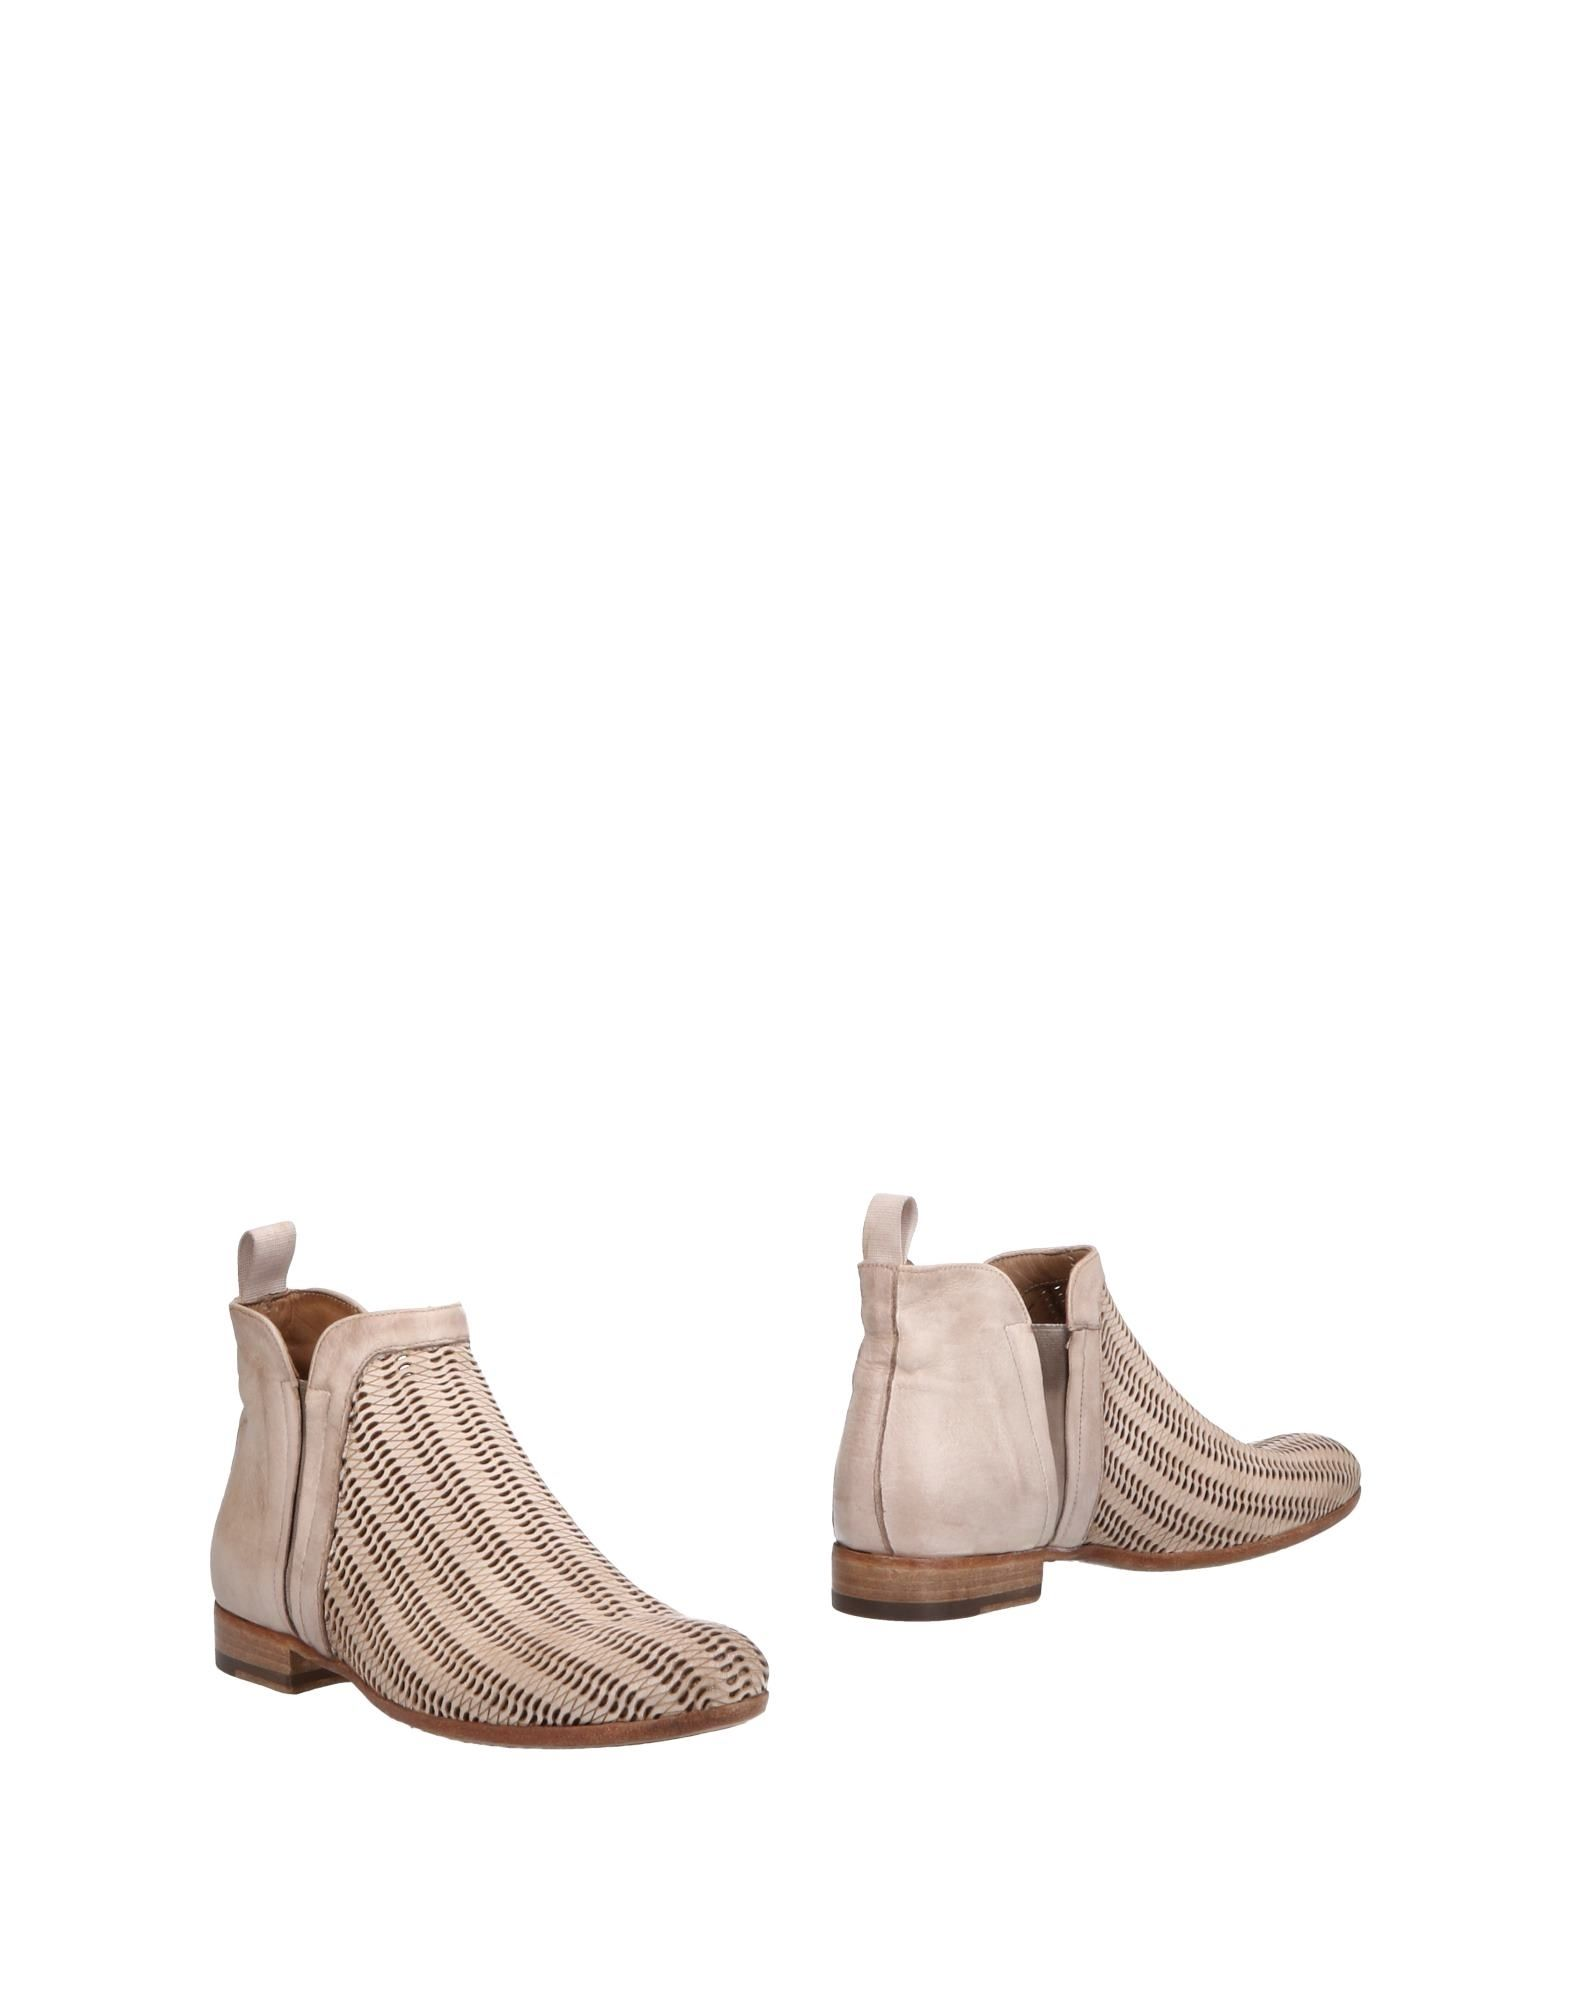 CORVARI Ankle Boot in Sand